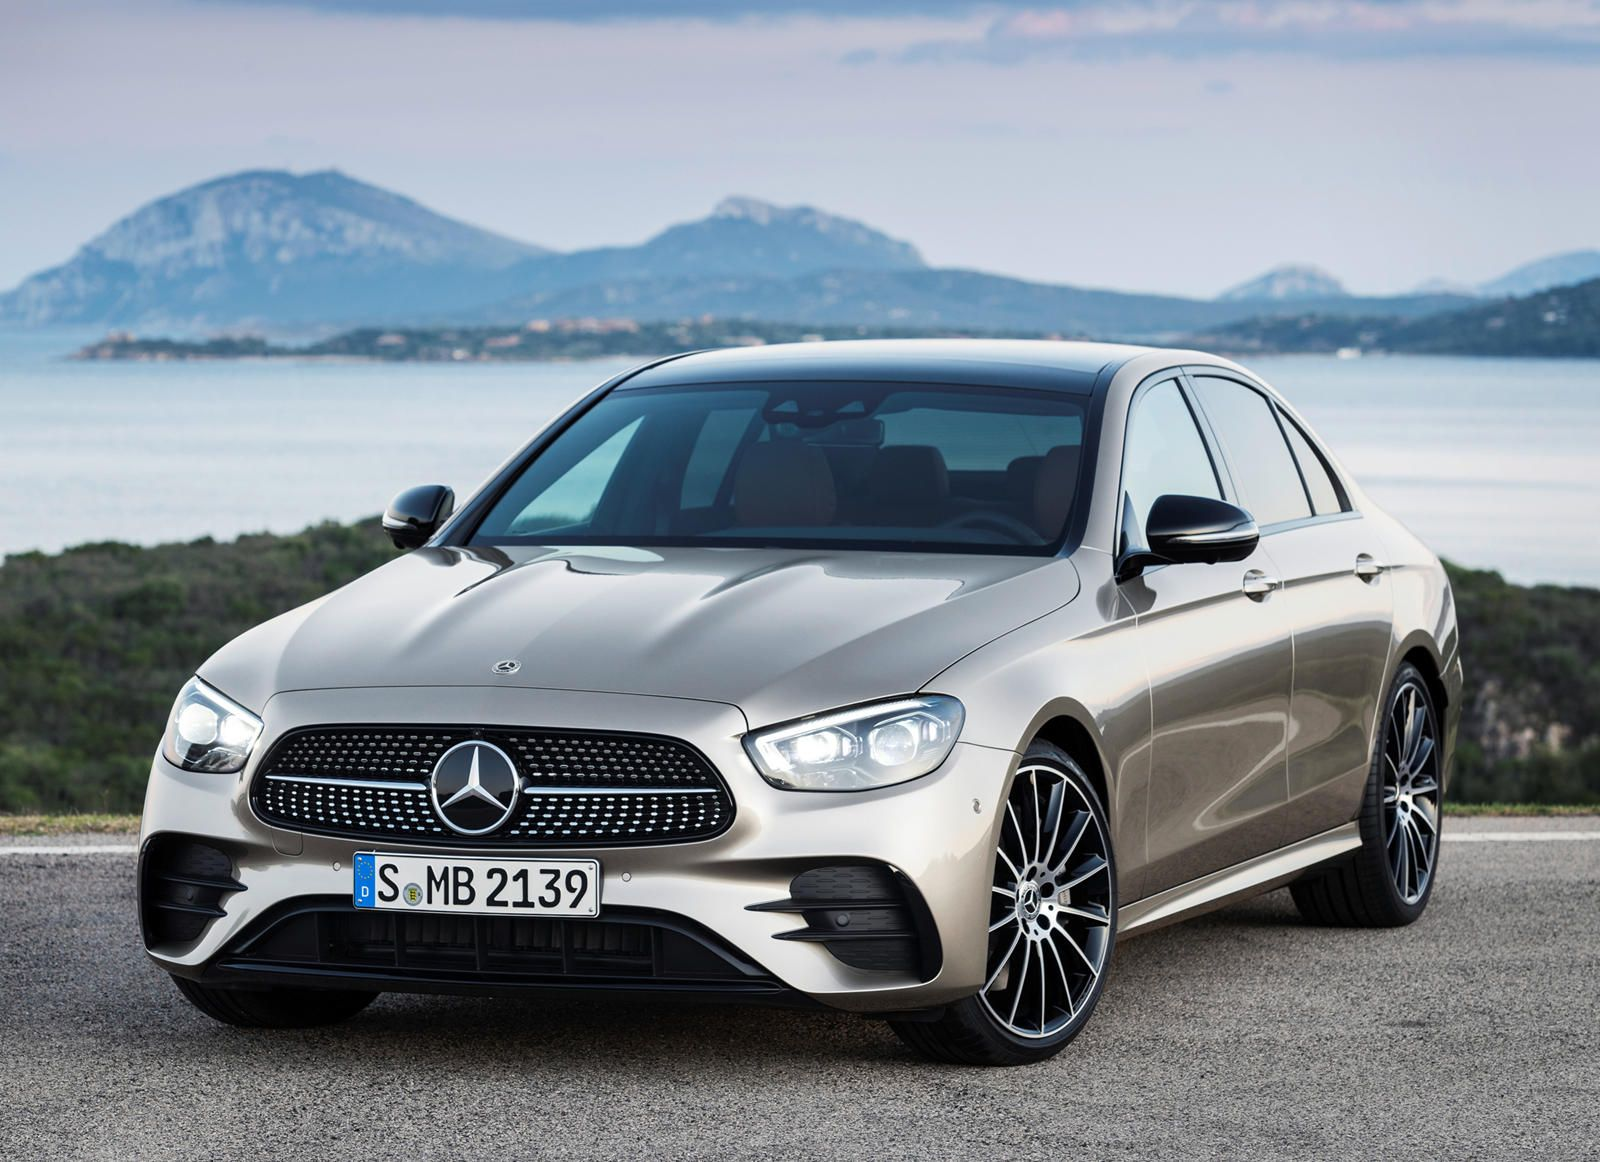 Mercedes Benz E Class Just Became Even More Comfortable New Feature Will Be Most Welcome To Drivers With Back Problems Benz E Class Benz E Mercedes E Class